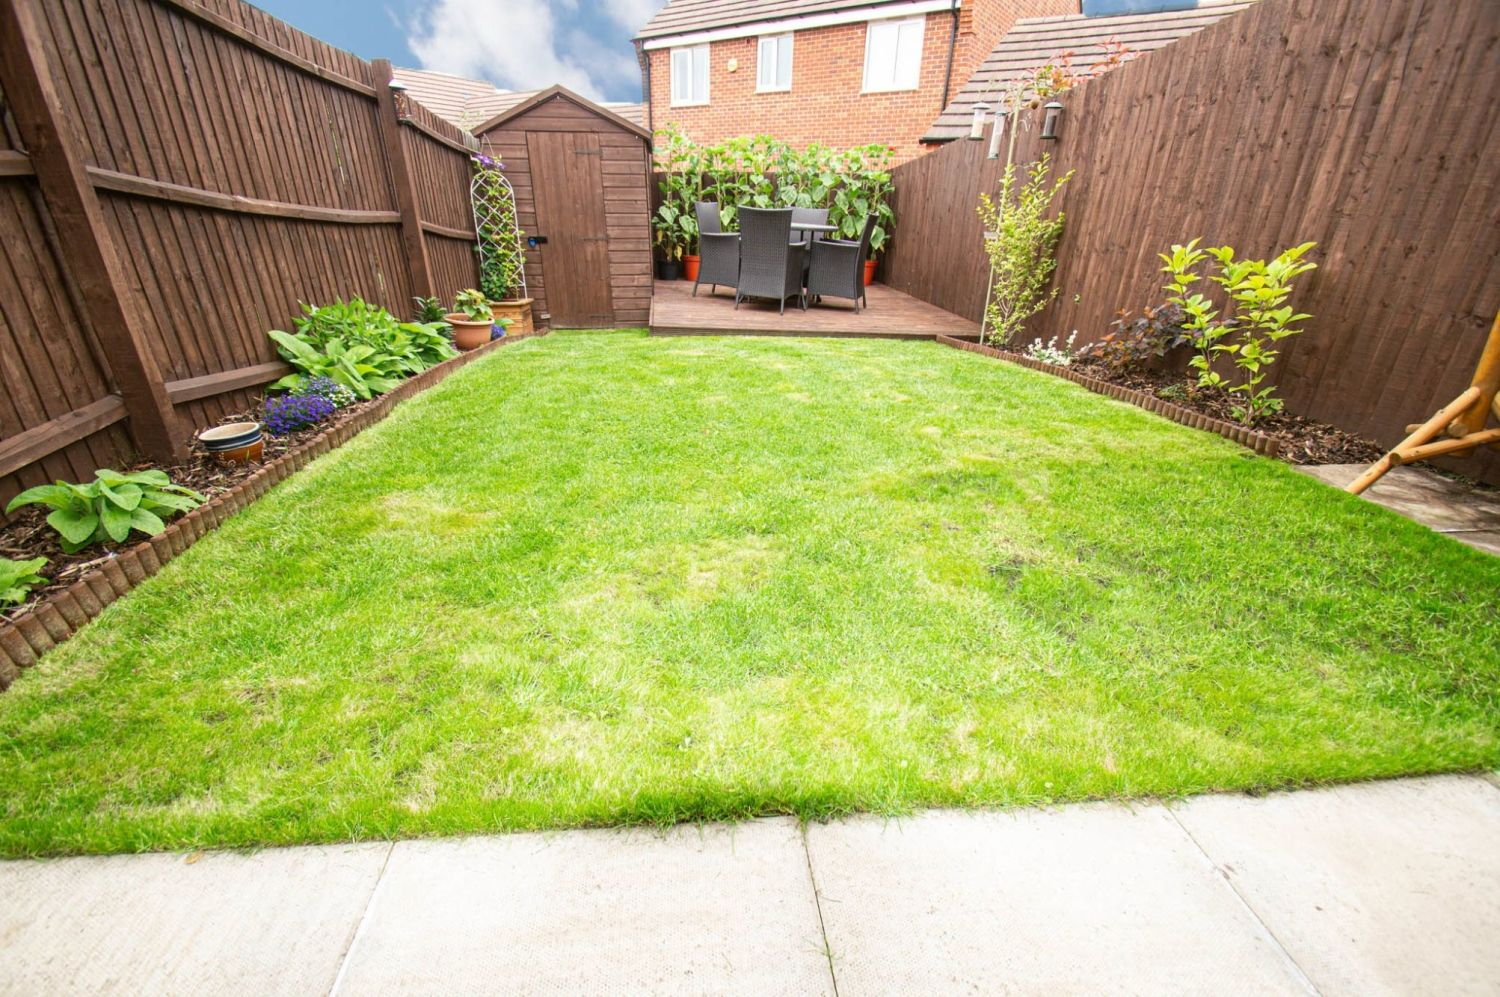 2 bed semi-detached for sale in Bobeche Place, Kingswinford 12